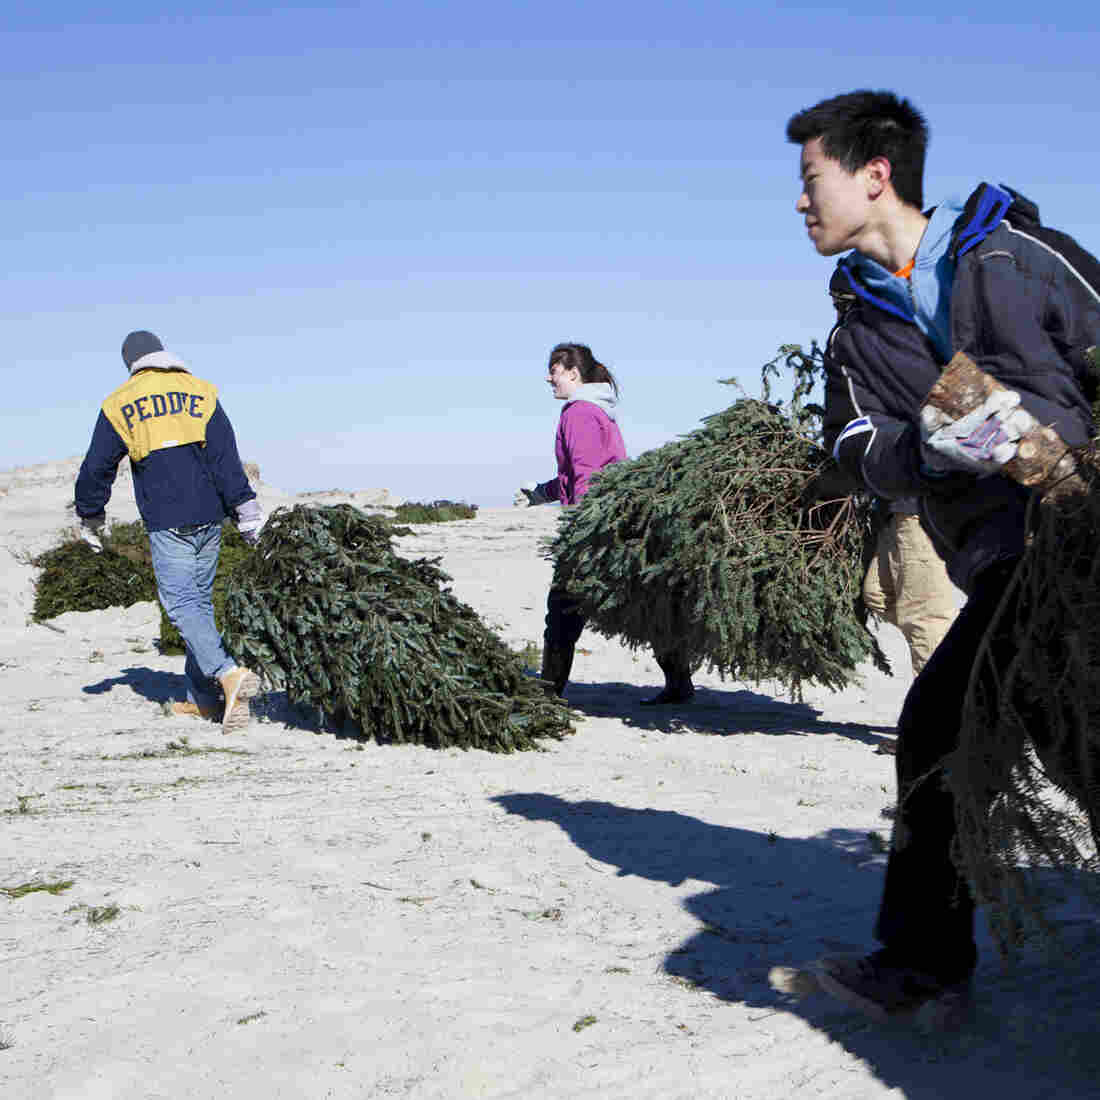 Daniel Riscoe, Jenna Hart, Anthony Chau and Caroline Lloyd (all students from the Peddie School in Hightstown, N.J.) carry donated Christmas trees across Island Beach.